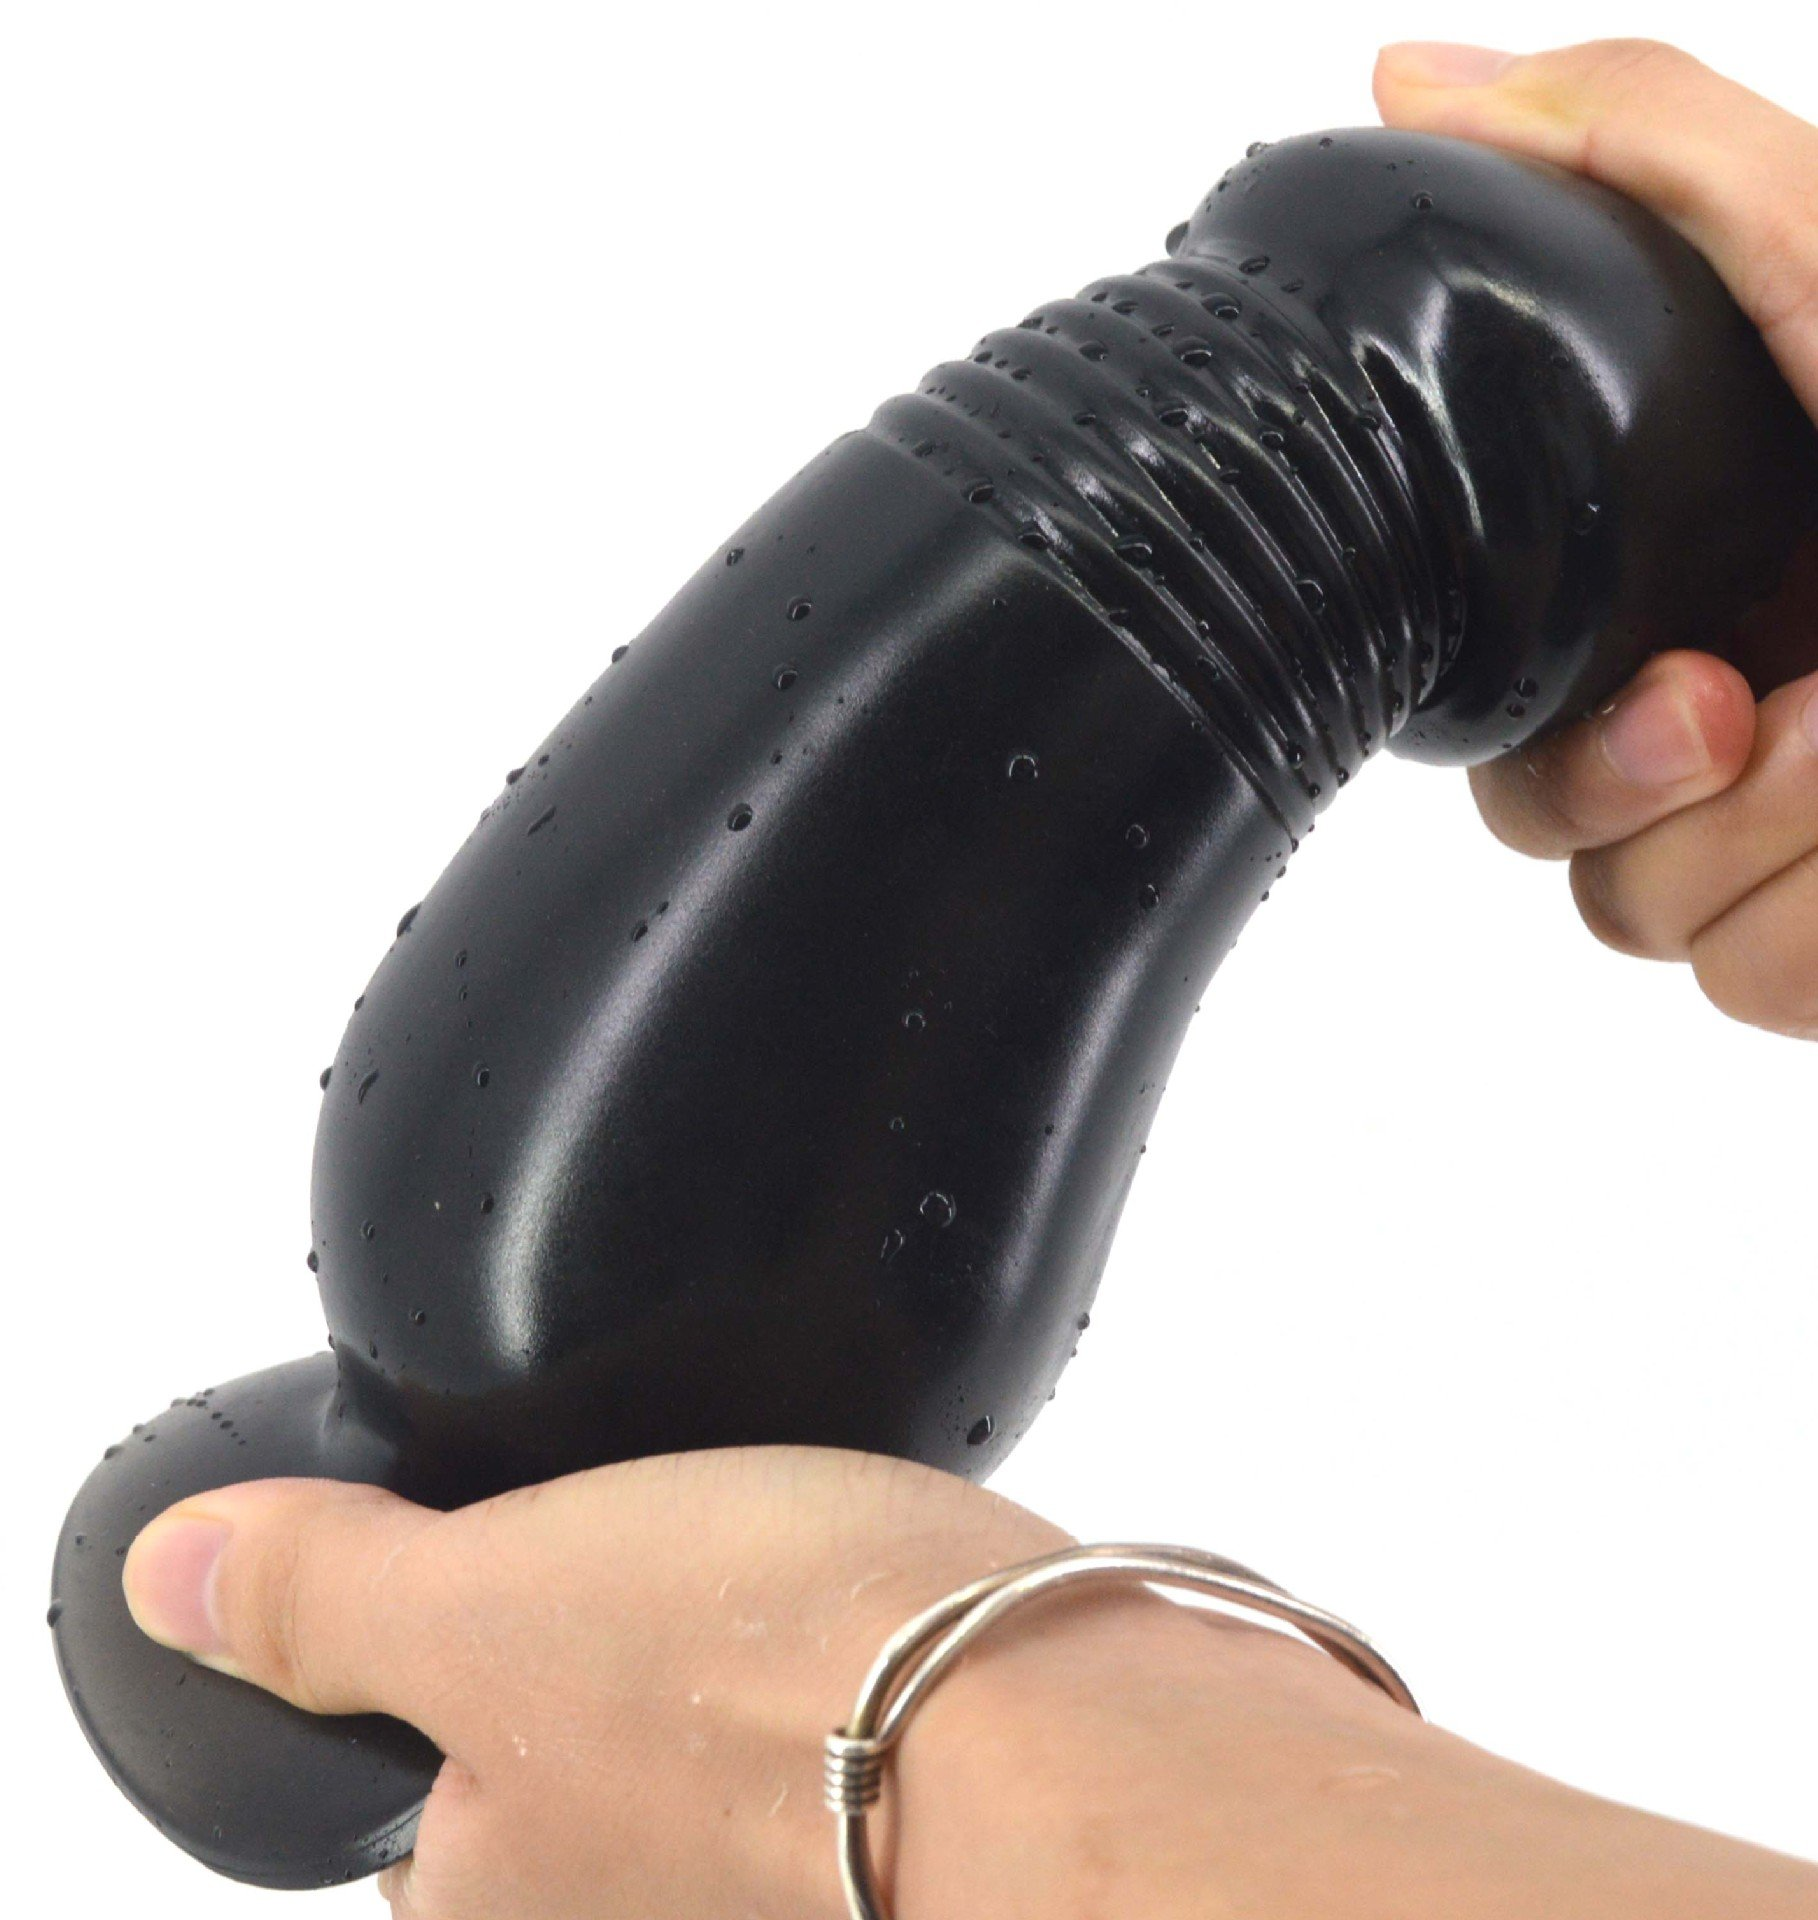 LZYAA Big Size Fake Dildo Penis Suction Cup (Black) by LZYAA